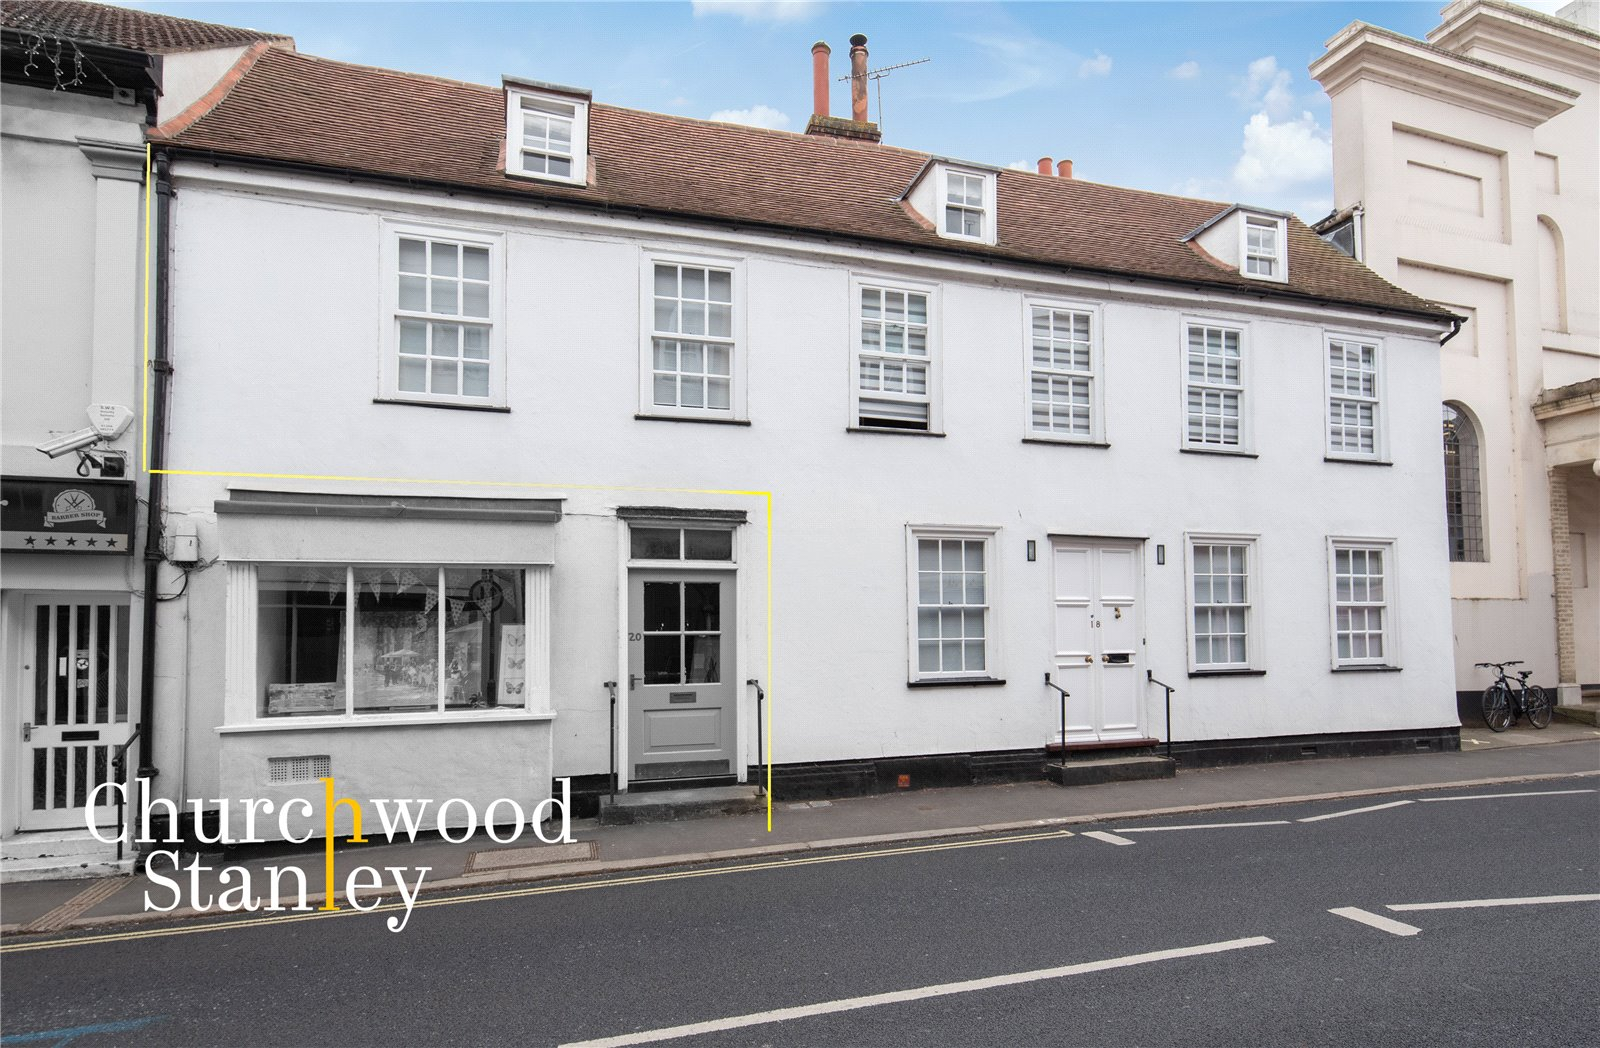 4 bed house for sale in High Street, Manningtree 2